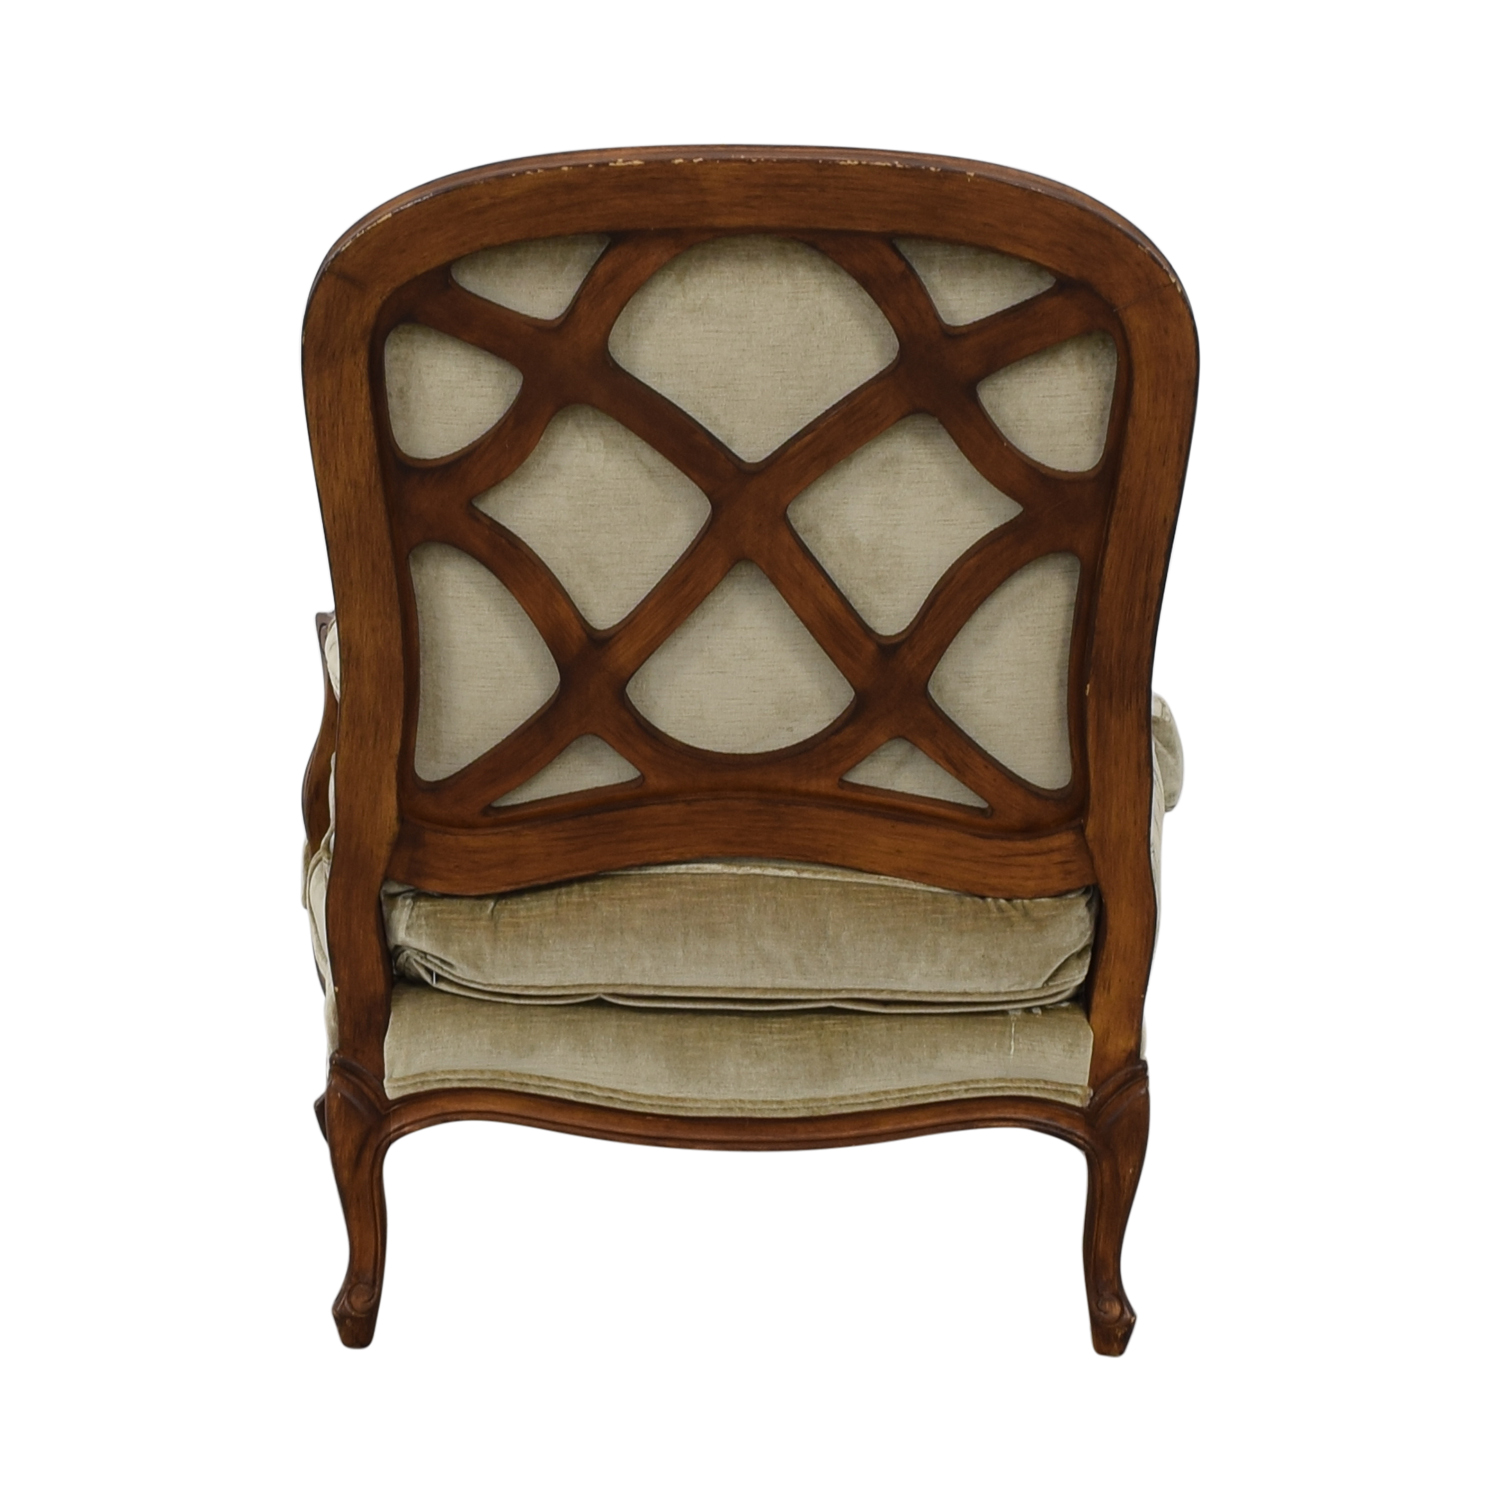 Drexel Heritage Drexel Heritage Country French Accent Chair green and brown